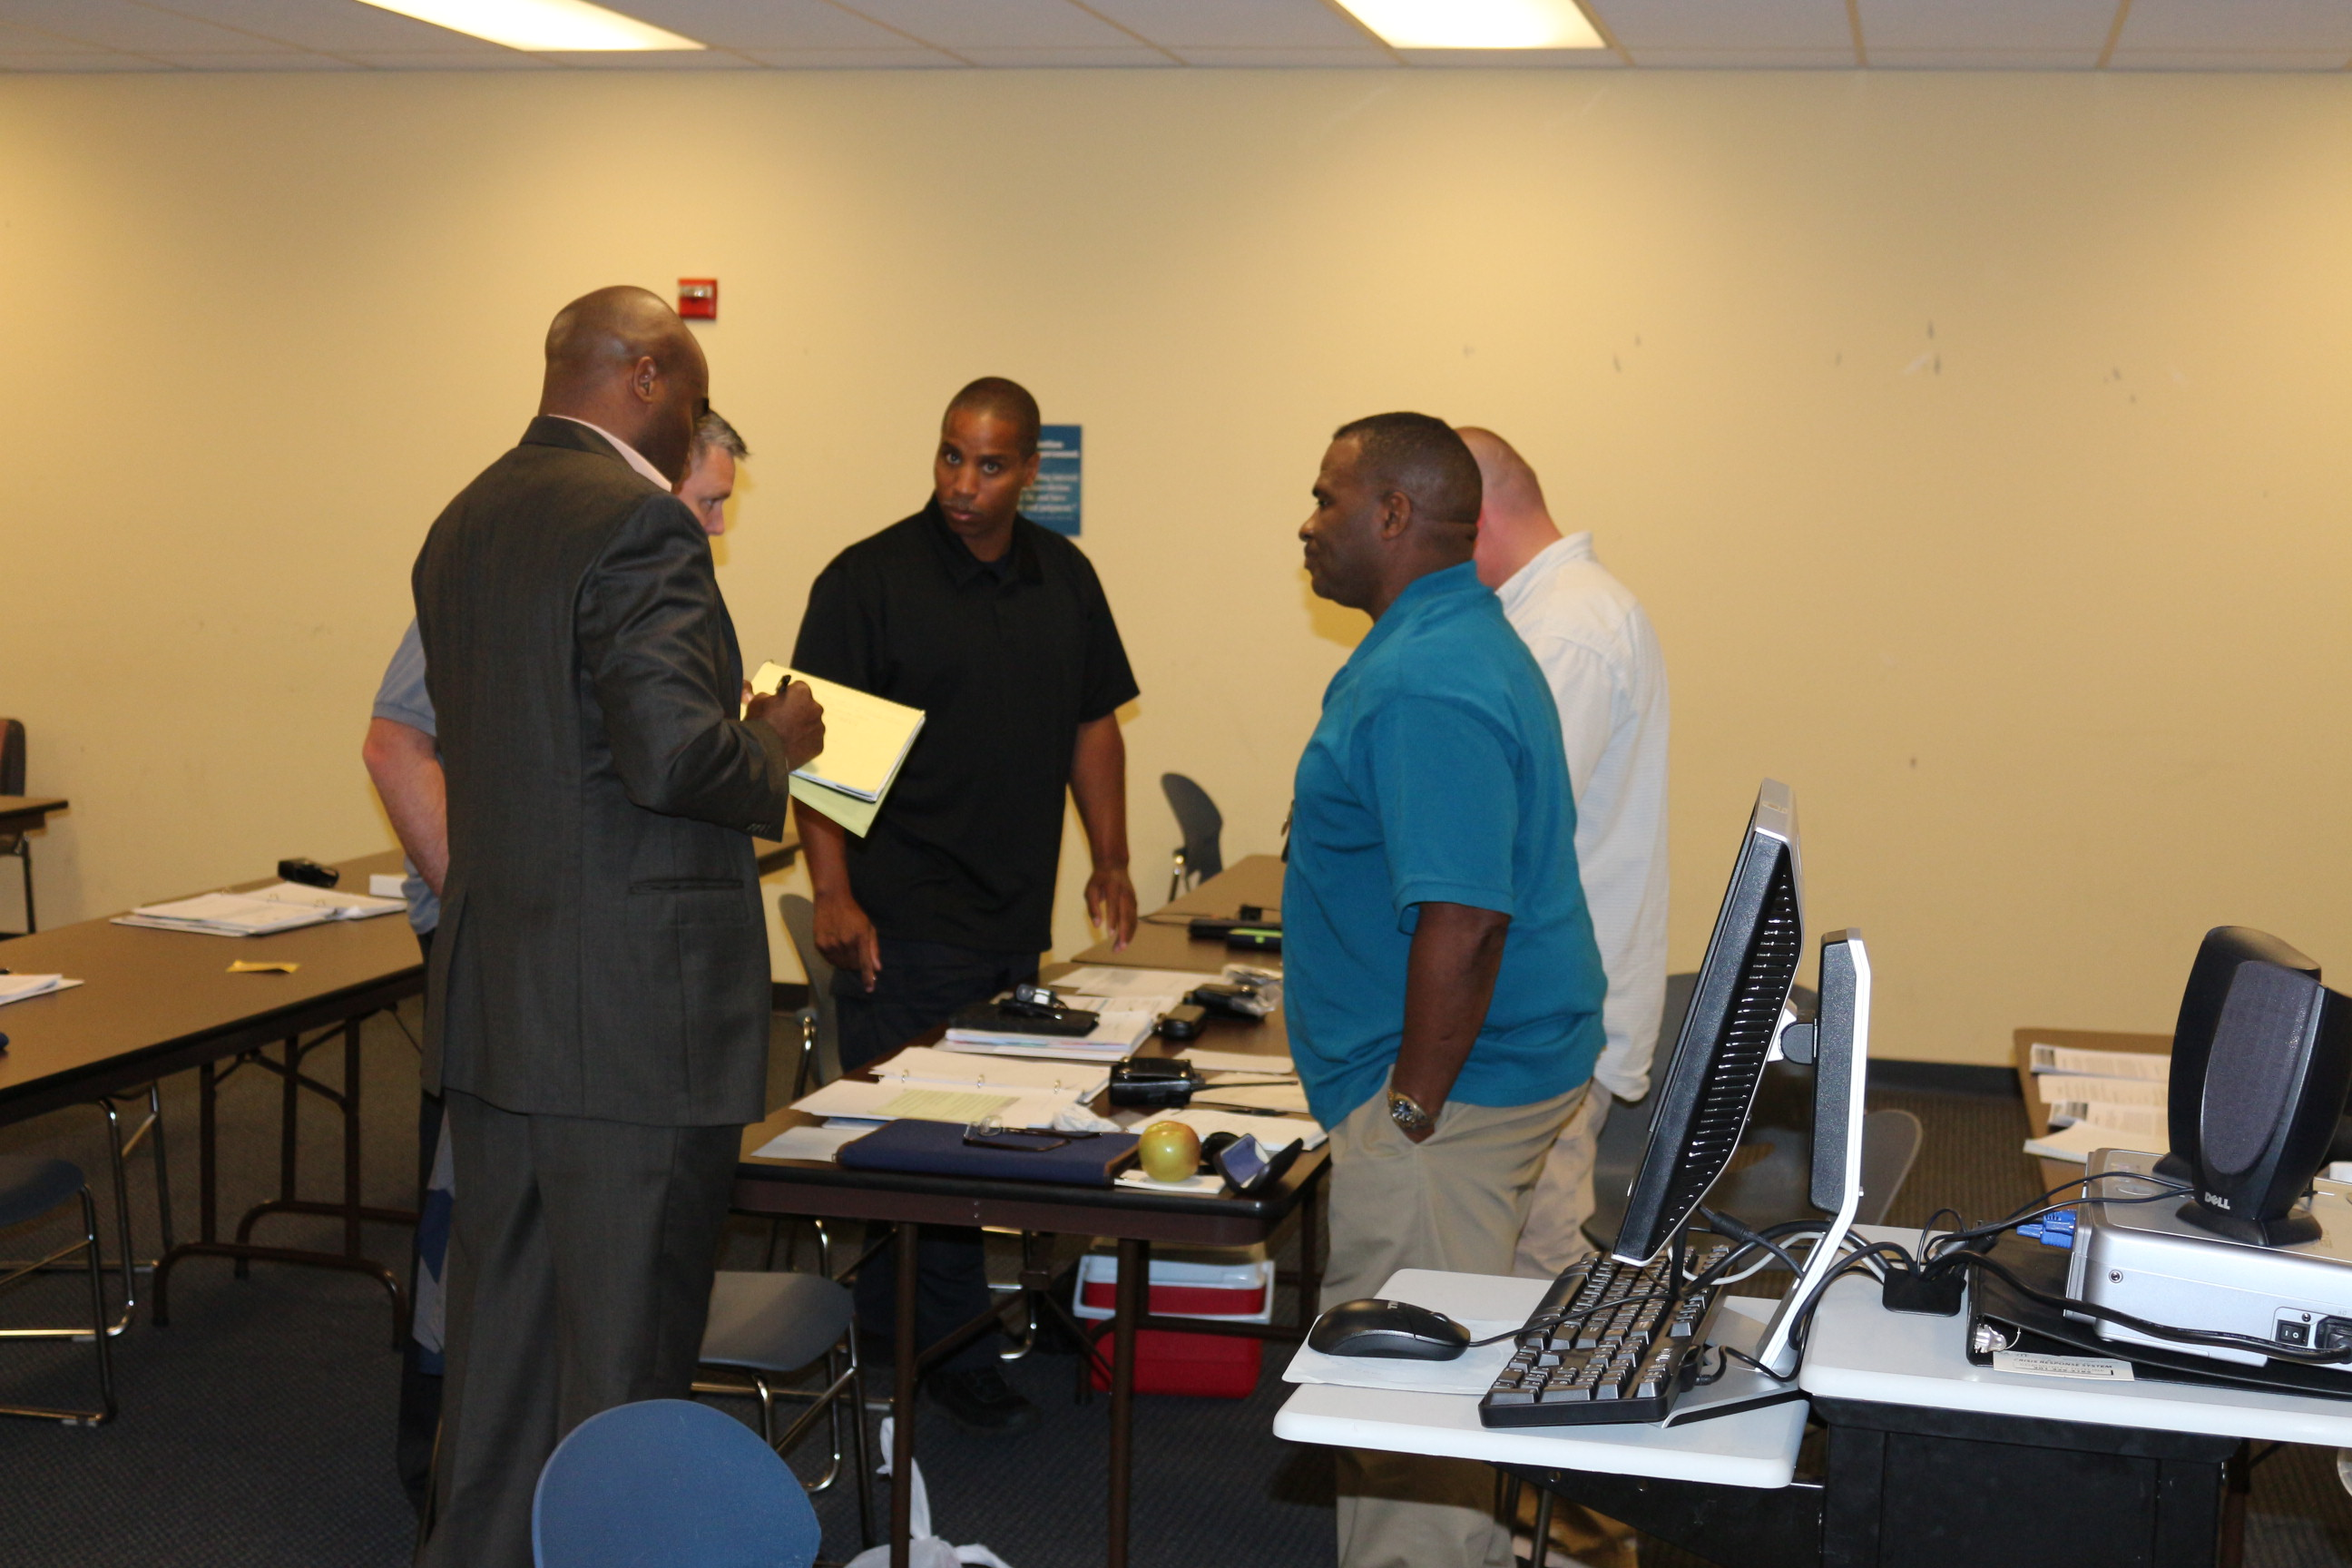 Executive Protection Training, Classroom Study and Exercises